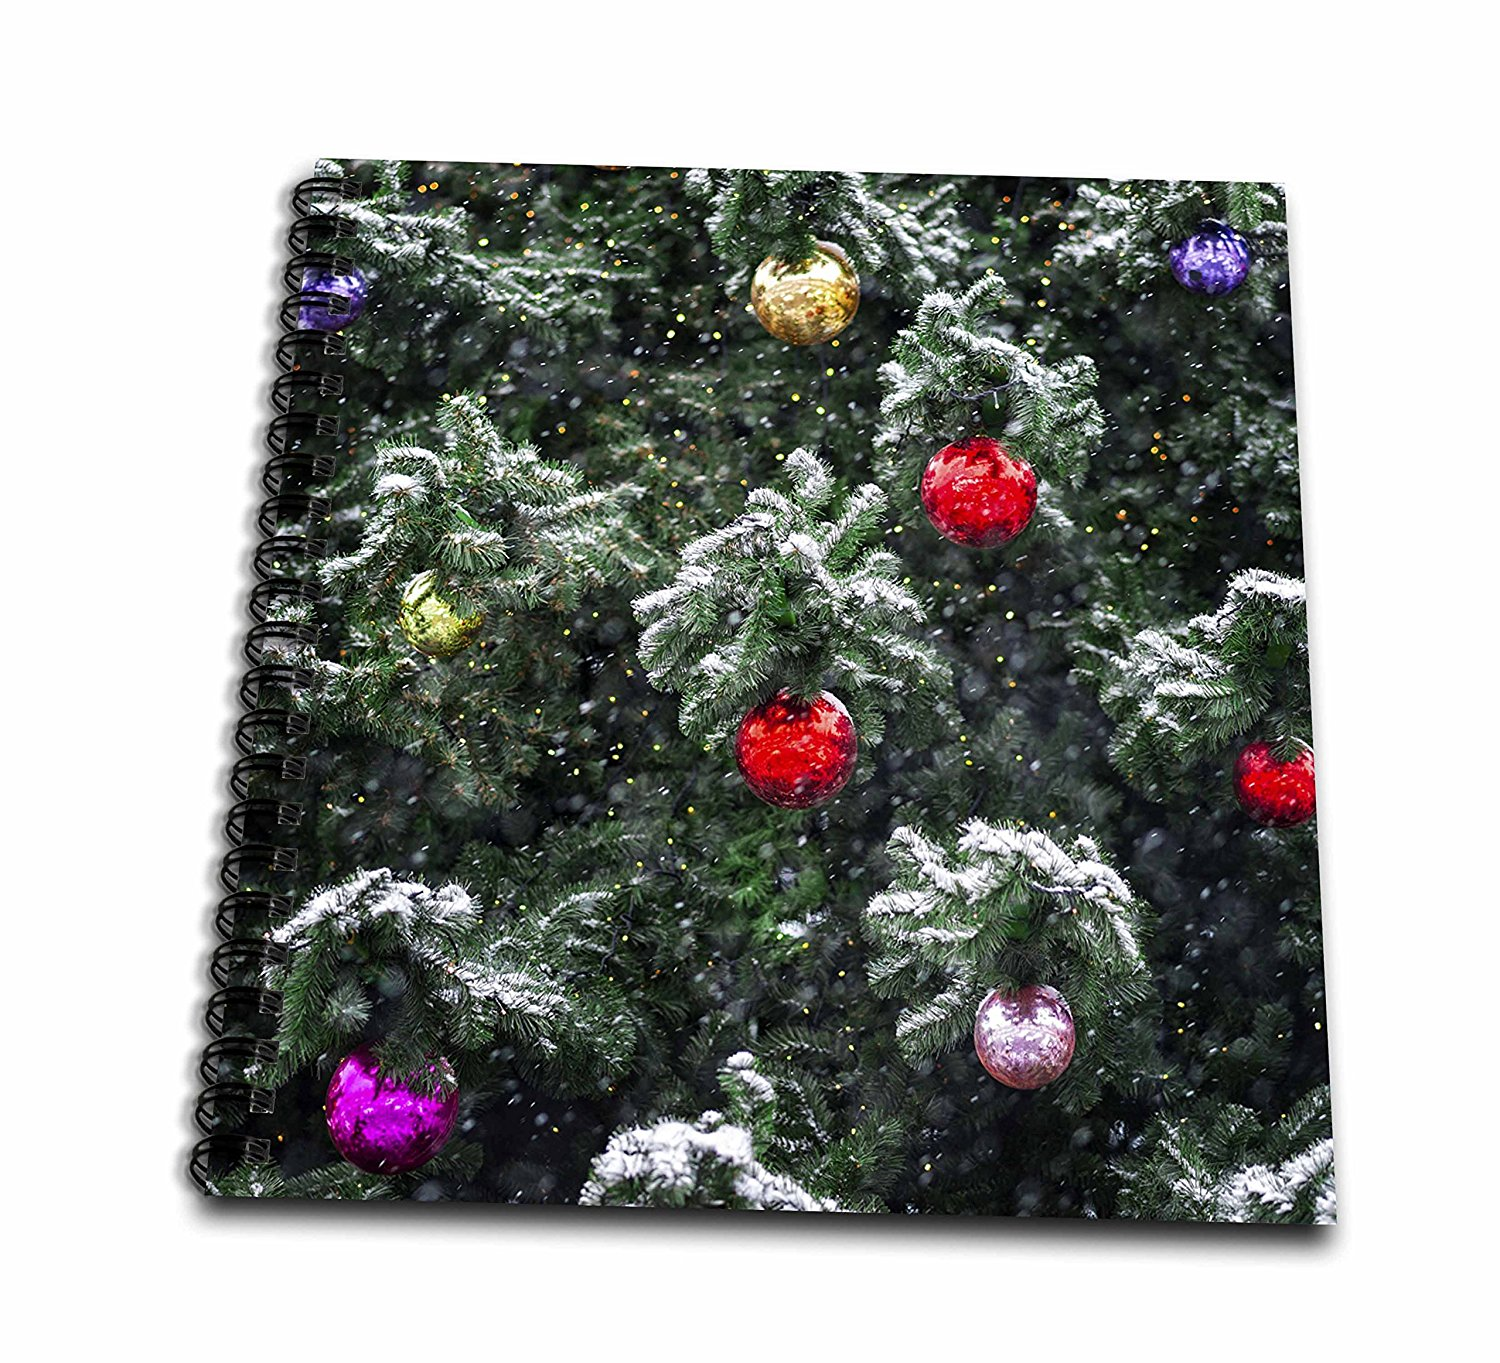 3dRose Alexis Photography - Holidays Christmas - Christmas tree, ornament balls, lights, snow and snowfall - Memory Book 12 x 12 inch (db_275974_2)